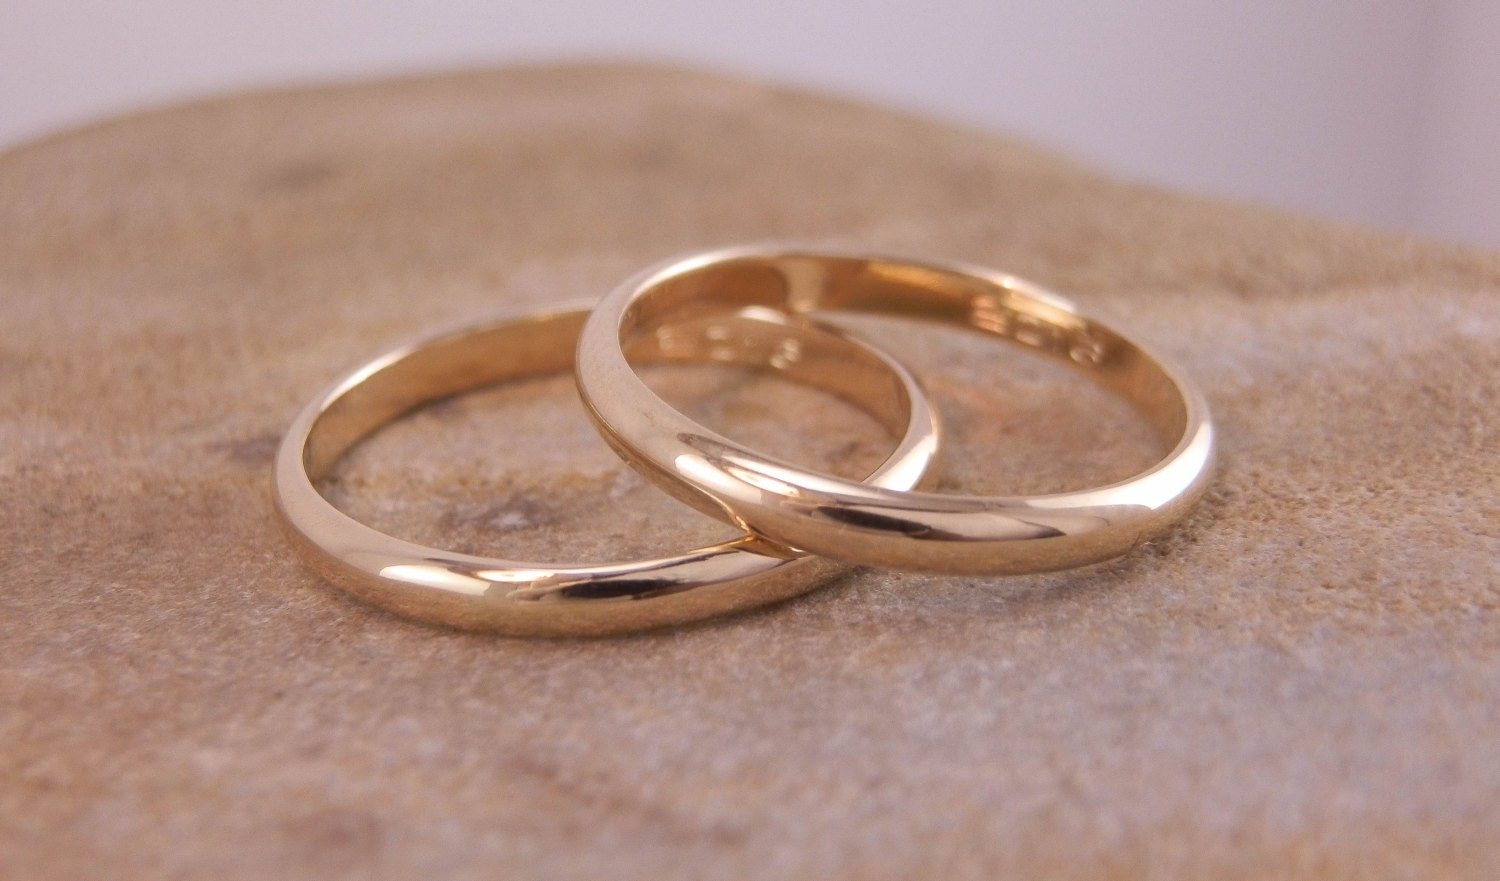 yellow gold wedding band individual or set engraveable half round traditional simple wedding band hand made in 14 kt yellow gold